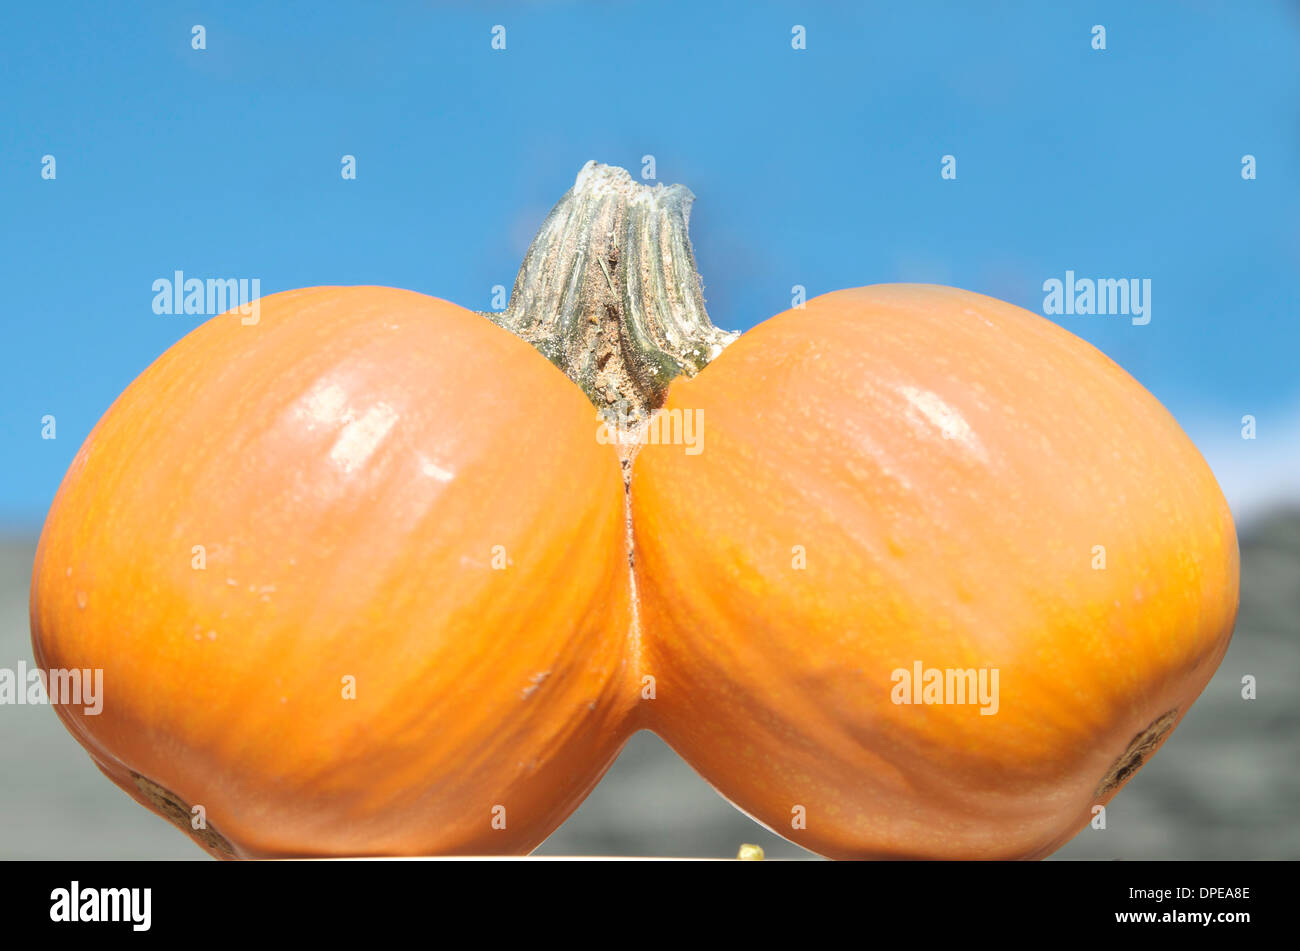 Two pumpkins joined together as one with one stem in bright sunlight with a blue sky in the background. - Stock Image